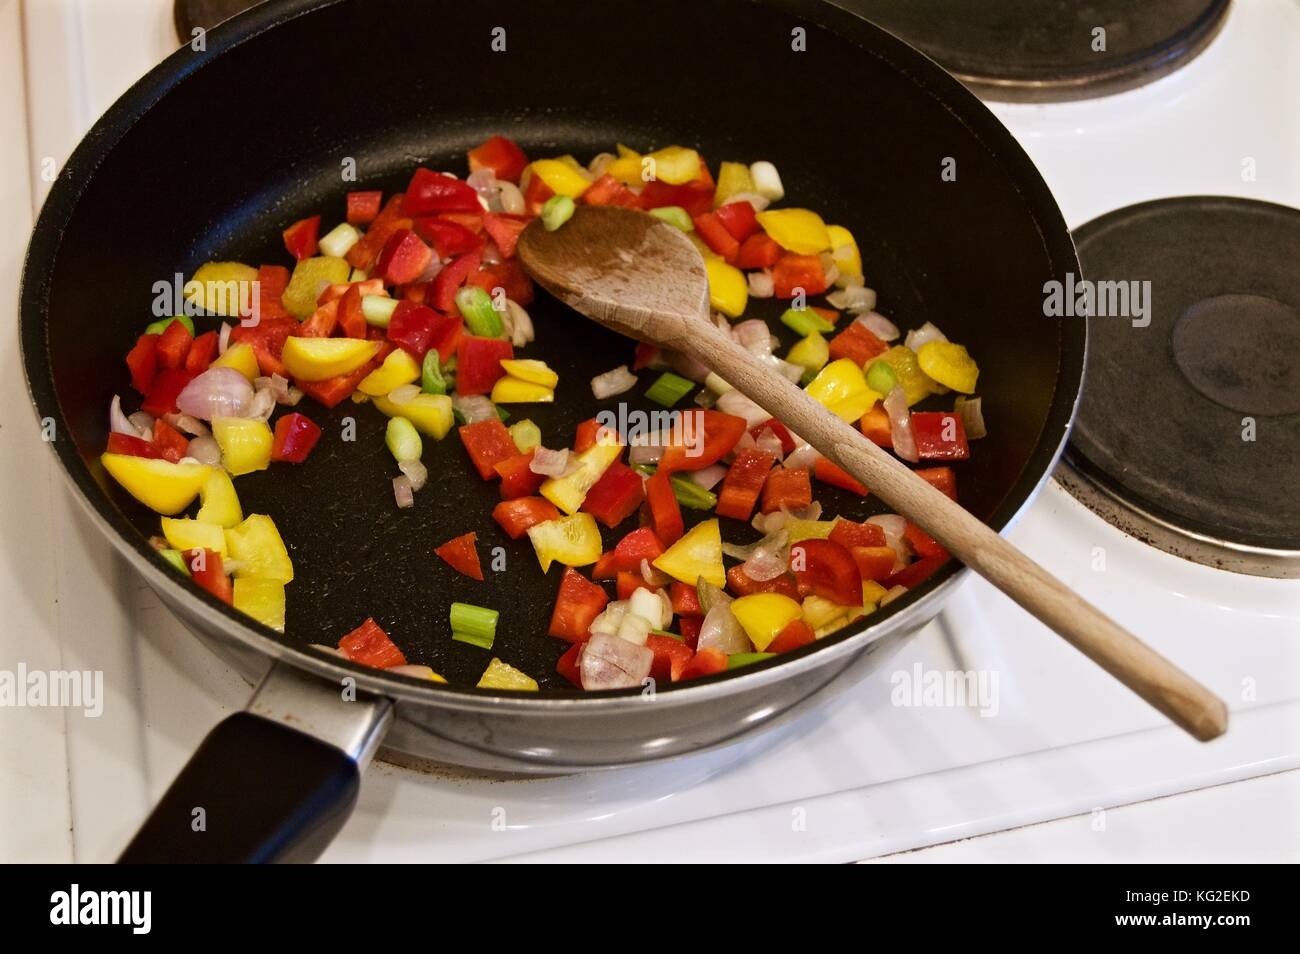 Cooking a paella on the hob in a teflon coated wok with wooden spoon - Stock Image